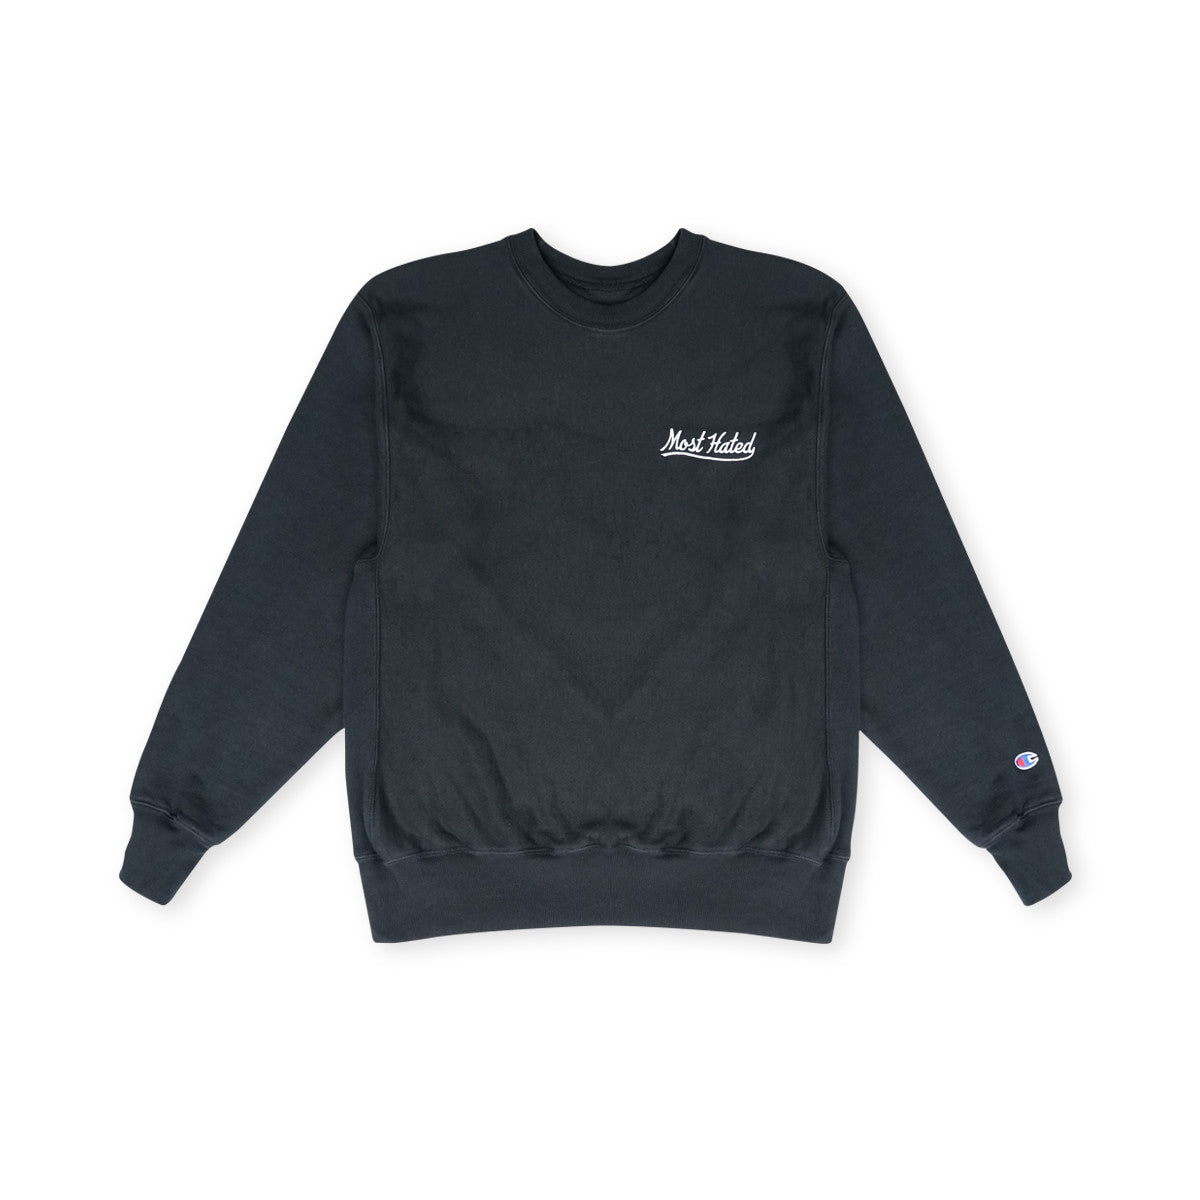 Most Hated Champion Crewneck Sweatshirt - Black